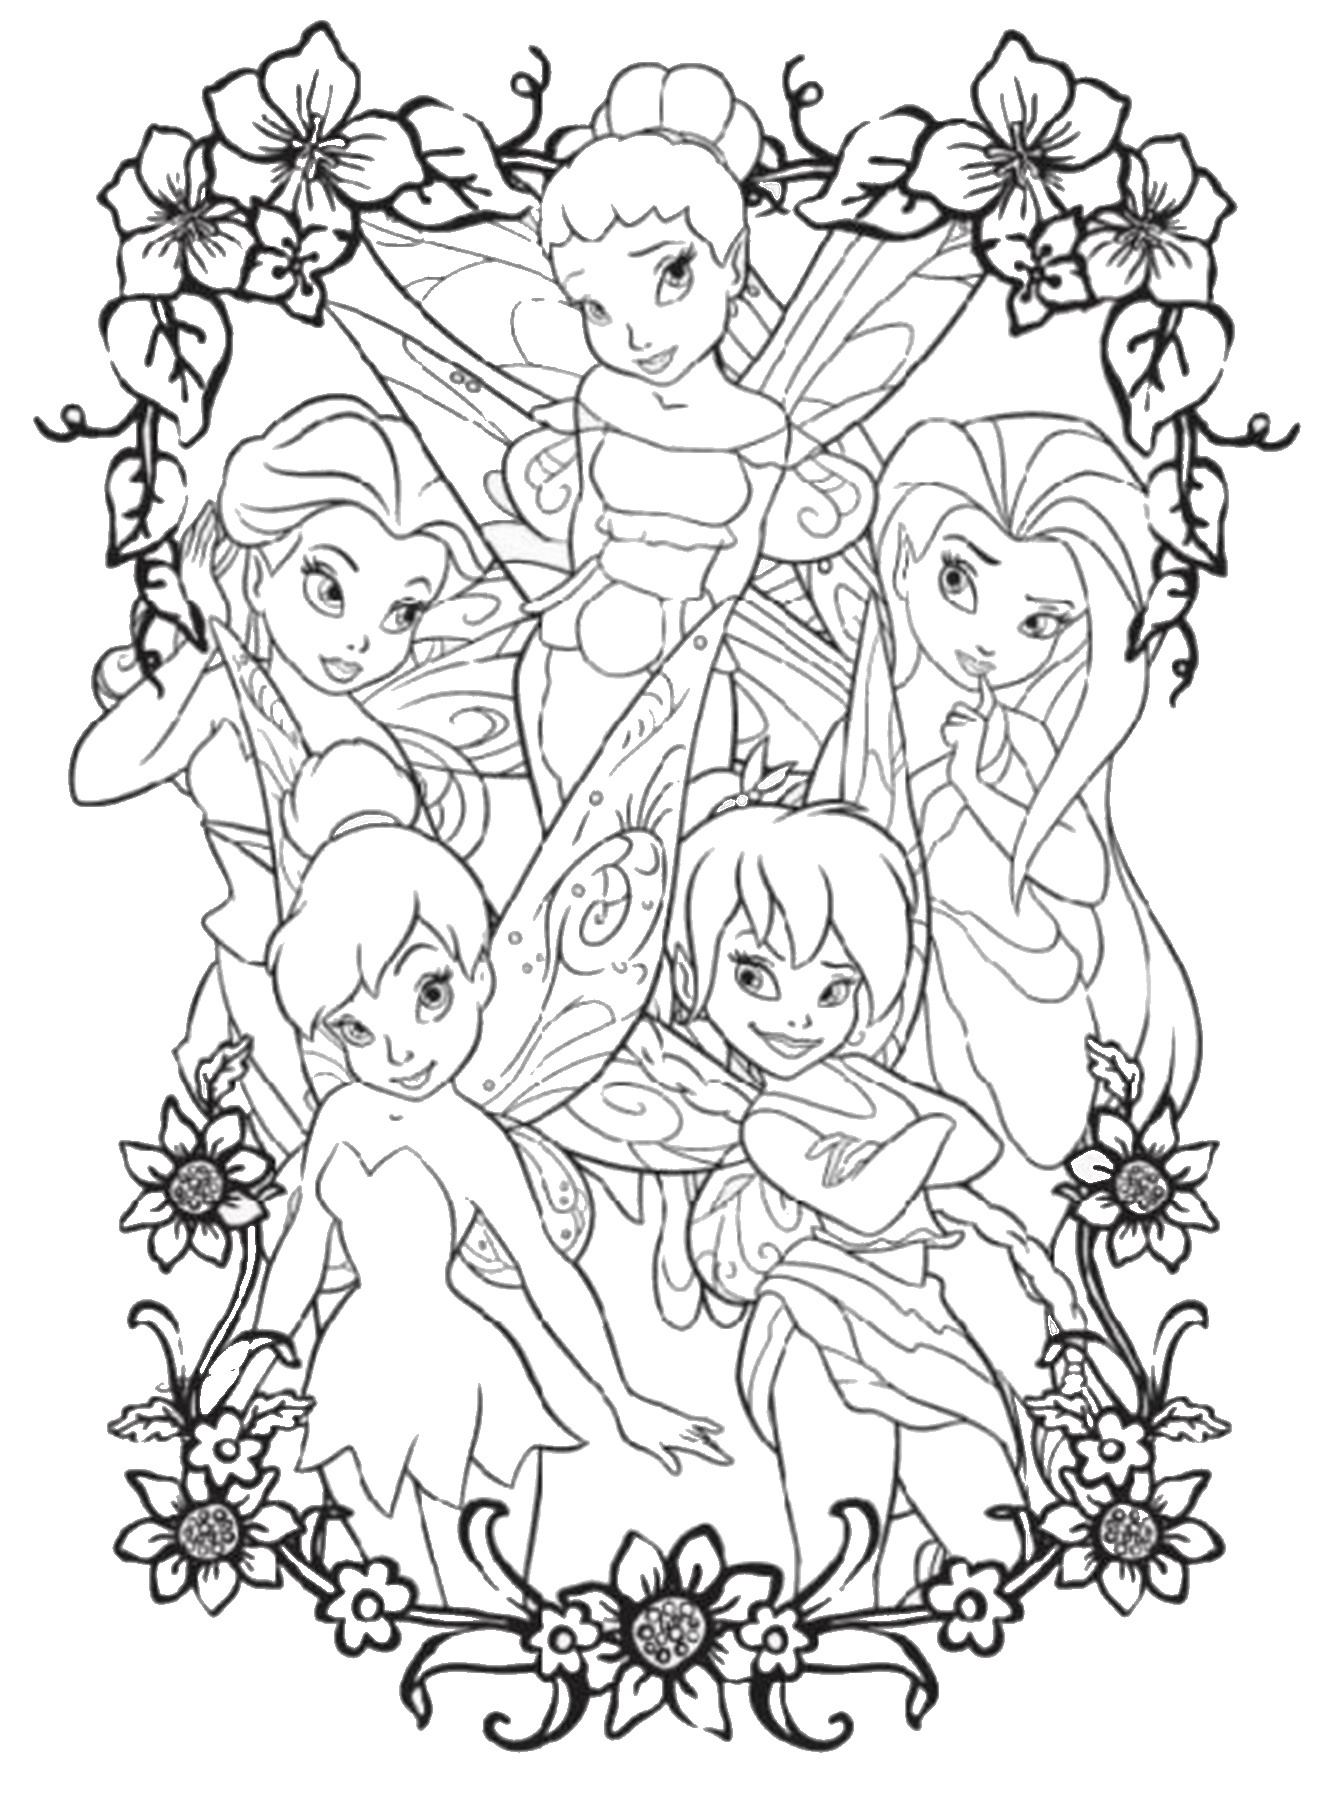 tinkerbell coloring book 30 tinkerbell coloring pages free coloring pages free coloring tinkerbell book 1 1